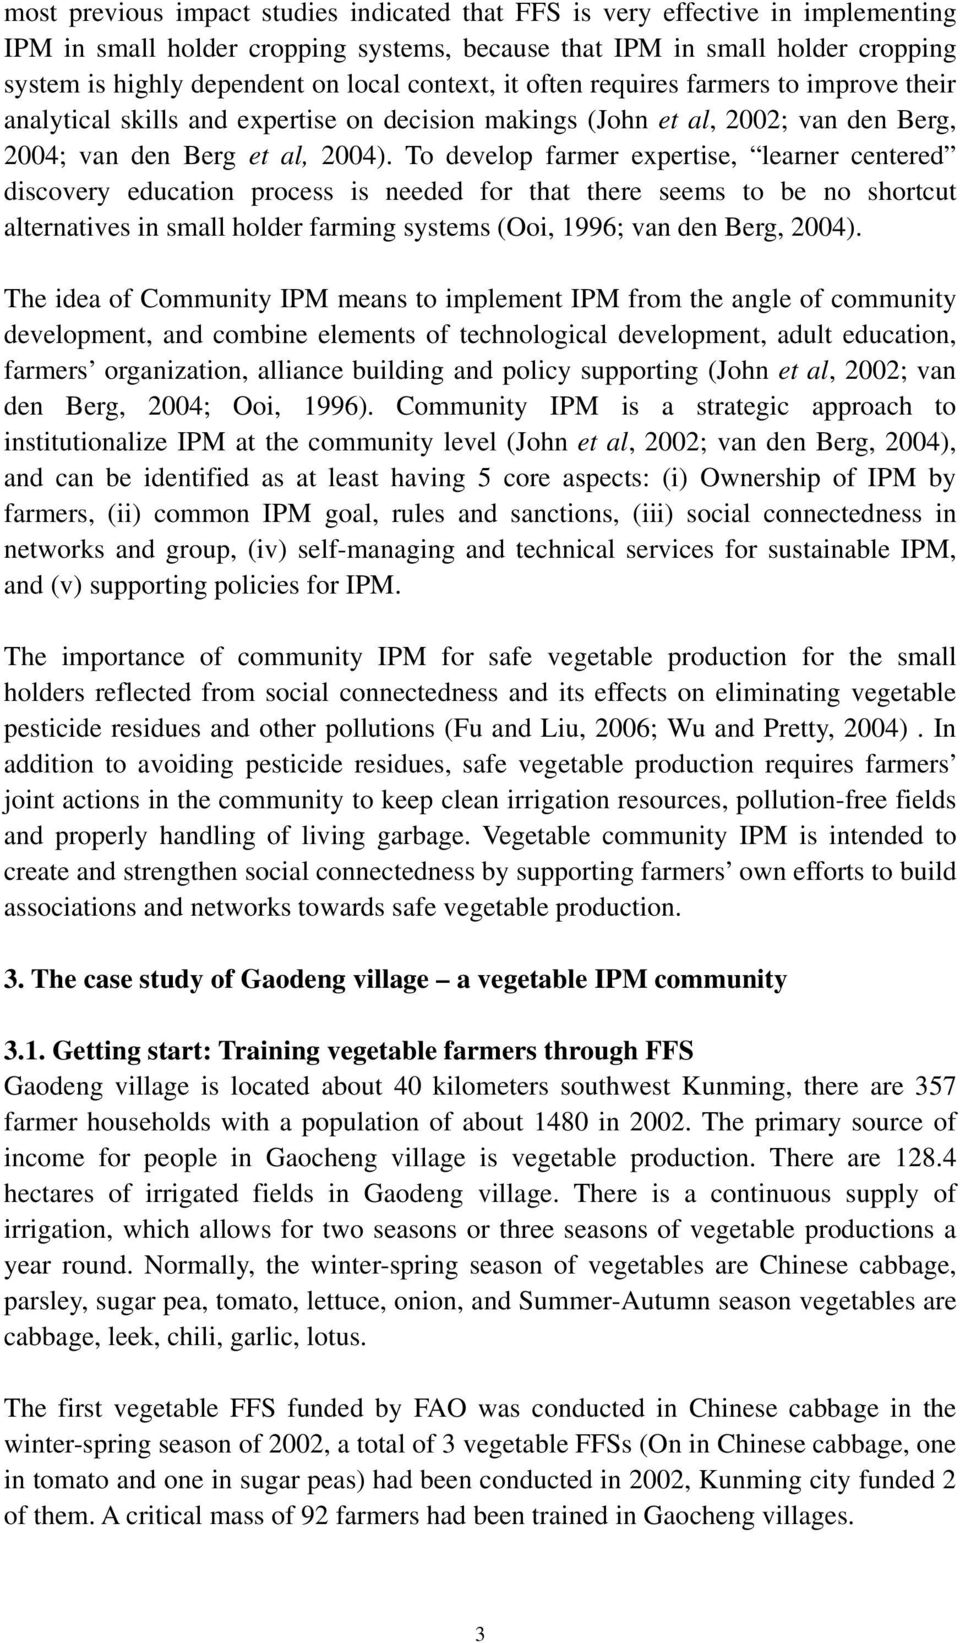 To develop farmer expertise, learner centered discovery education process is needed for that there seems to be no shortcut alternatives in small holder farming systems (Ooi, 1996; van den Berg, 2004).